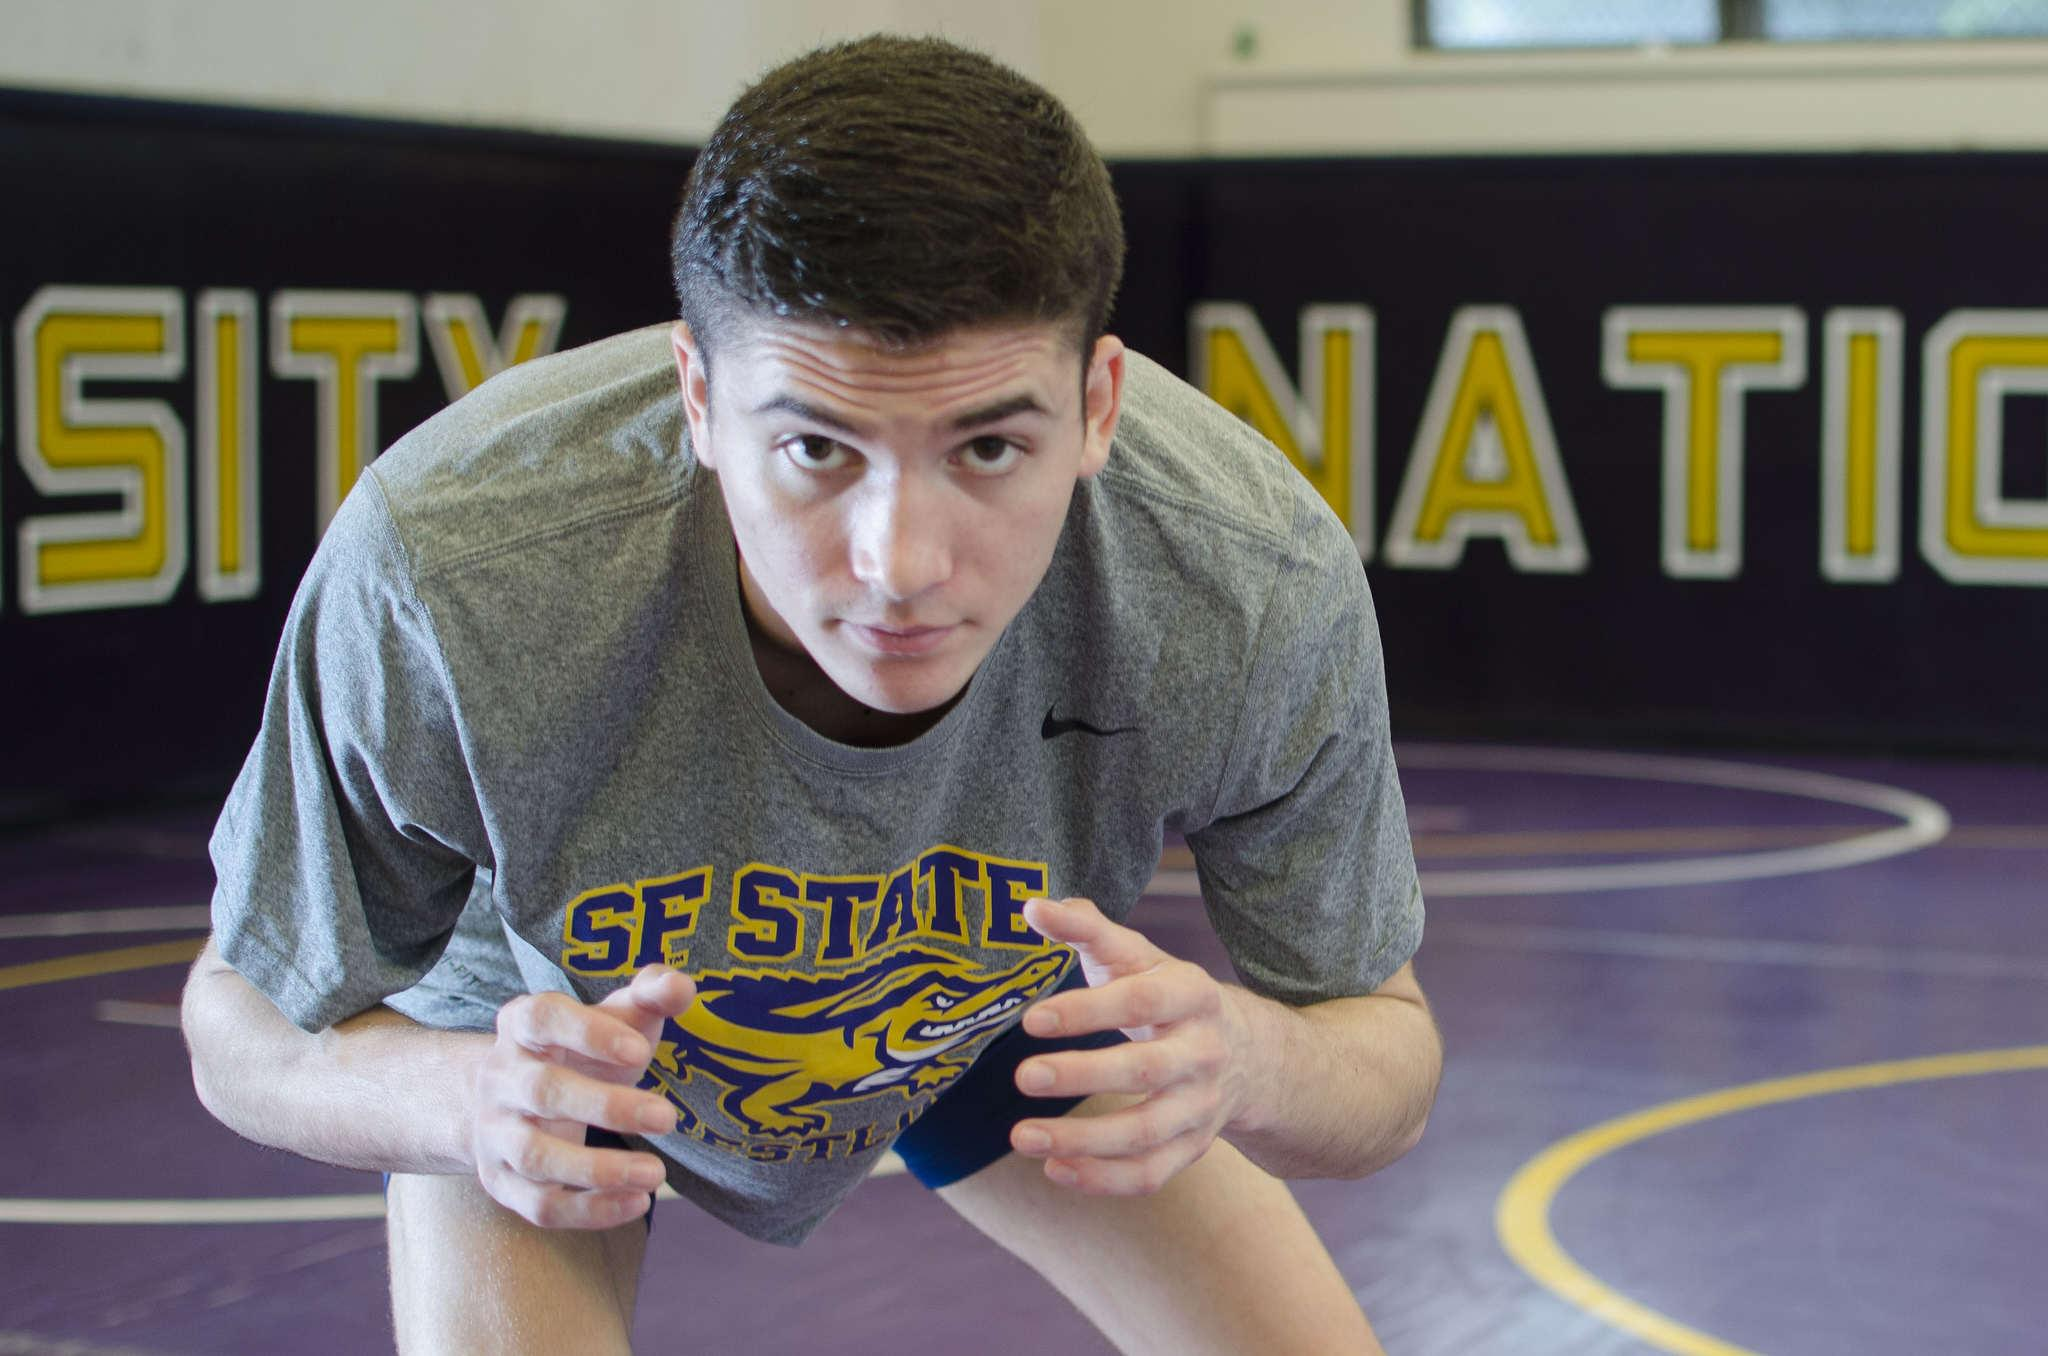 SF State's leading wrestler with a record of 25-9, Jordan Gurrola, stands on the mats in the gym on Monday Feb, 9.